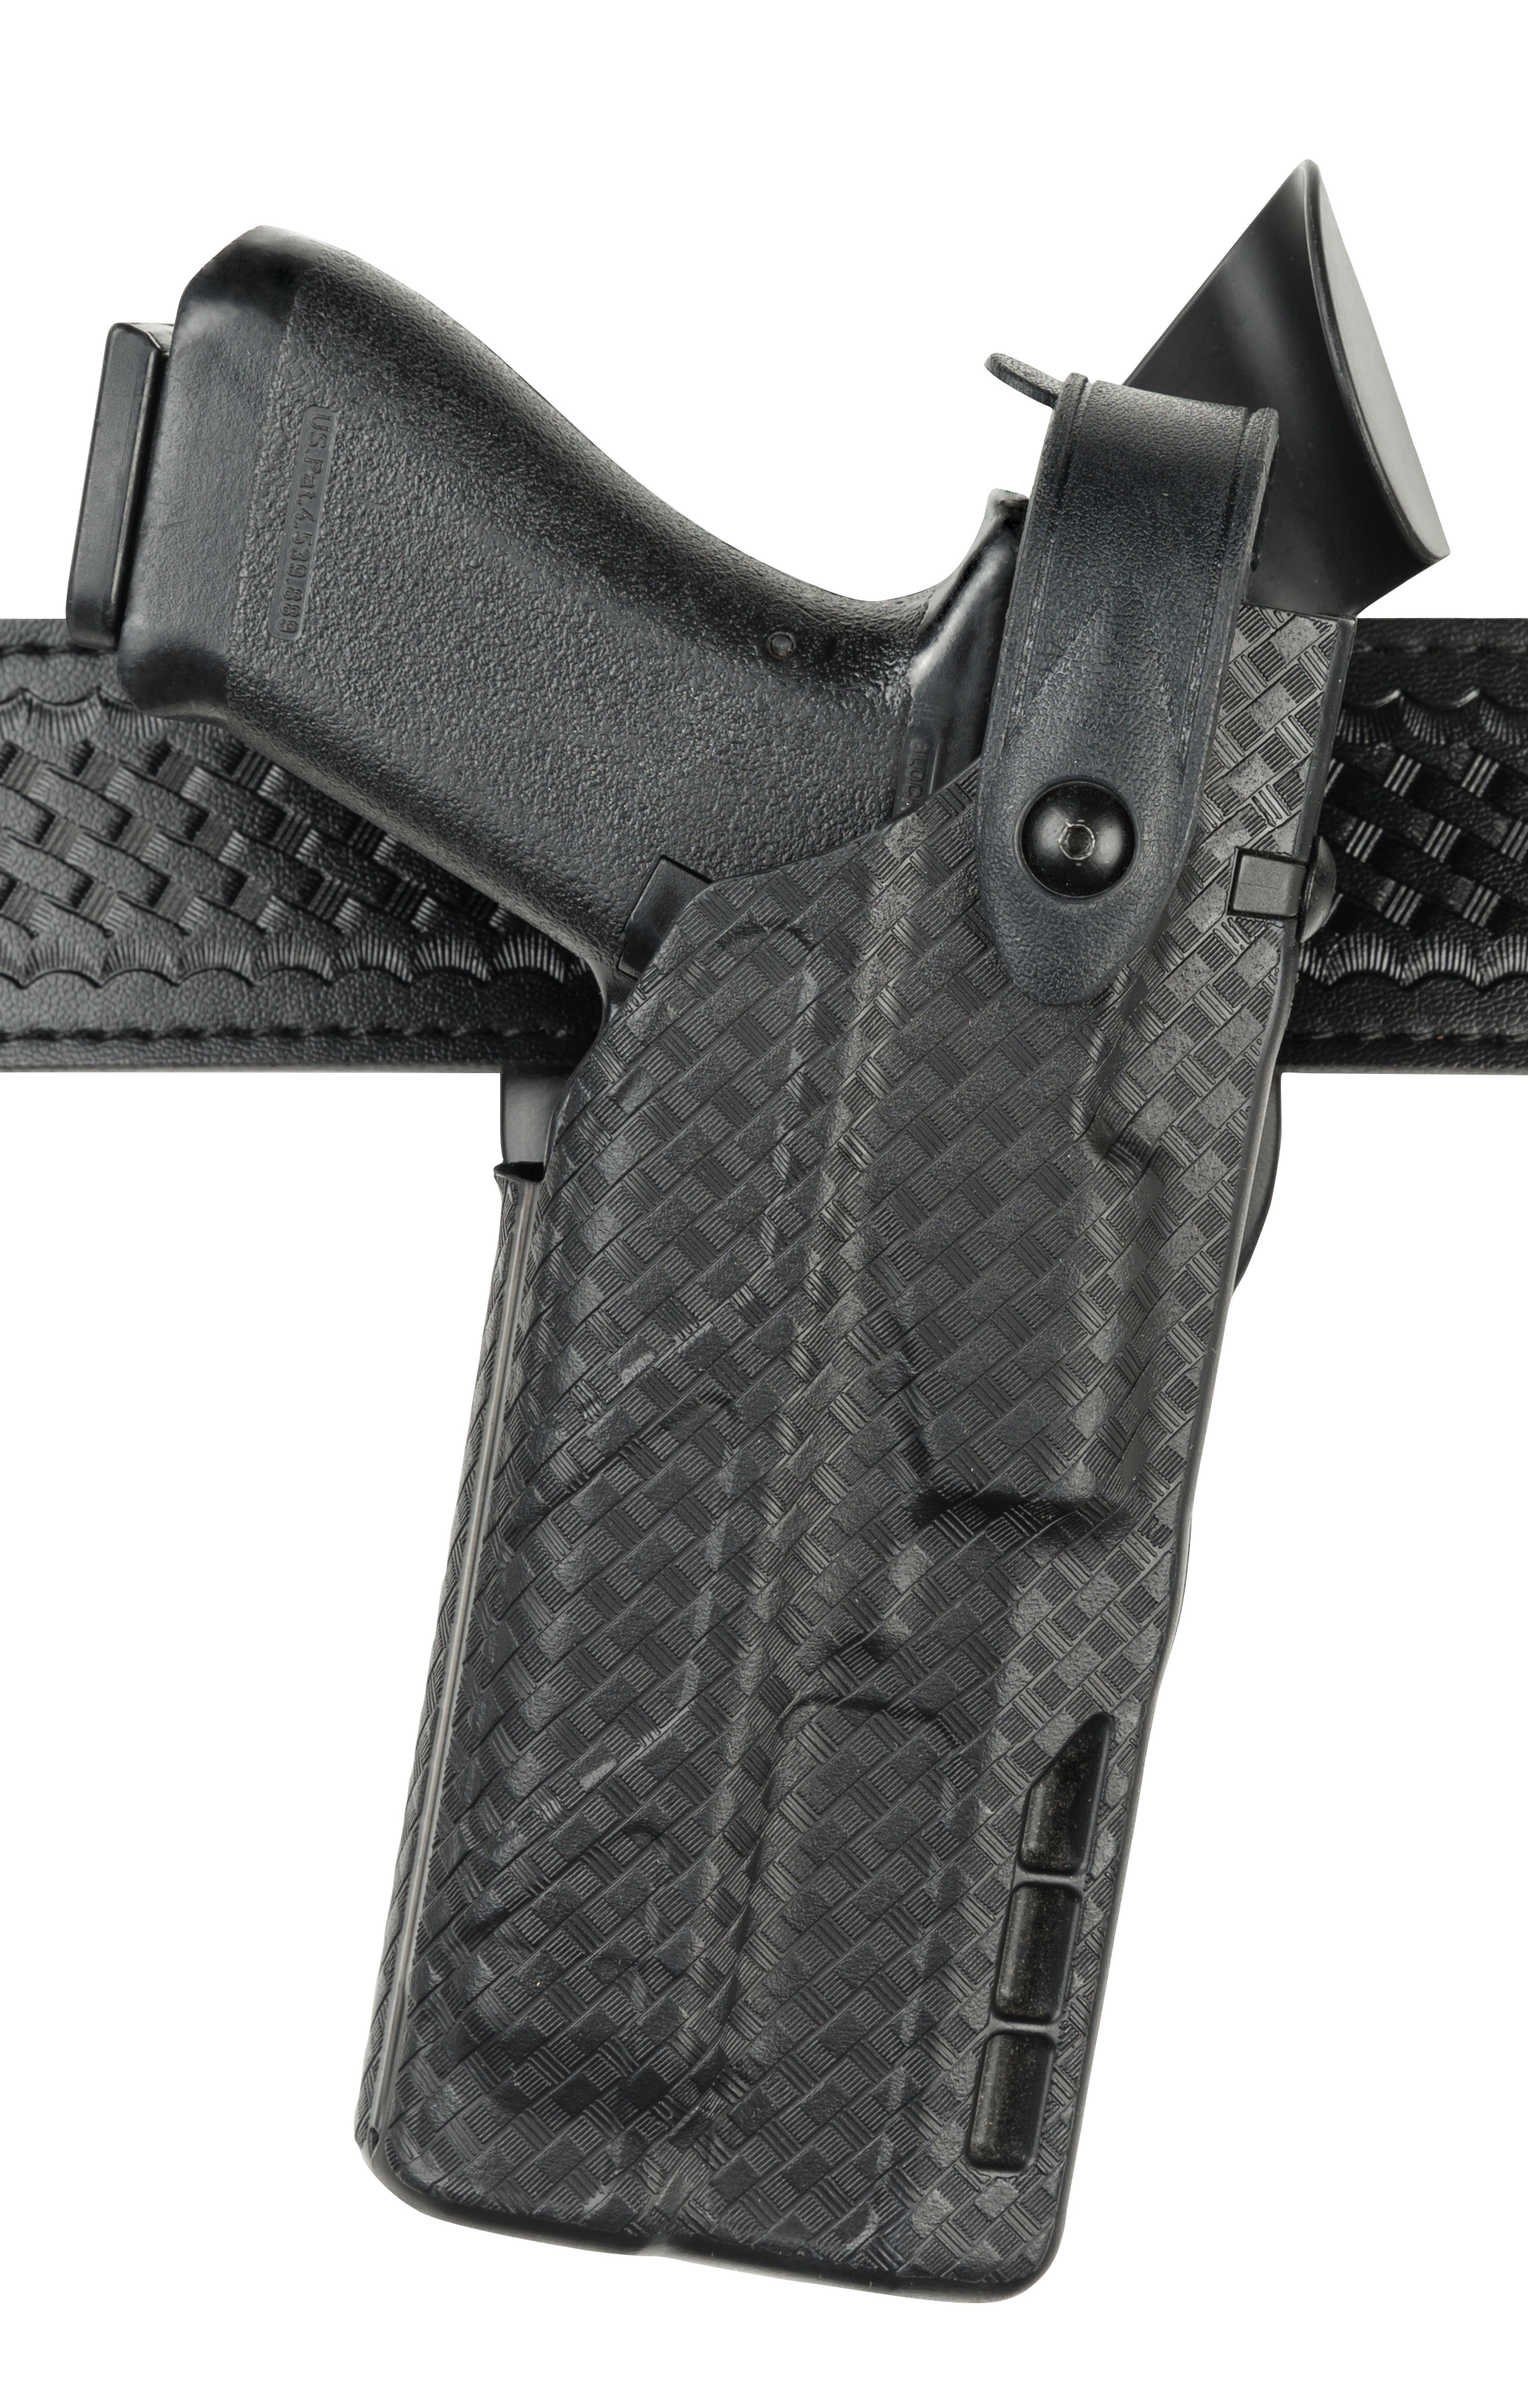 Safariland 7360 7TS ALS/SLS Mid-Ride III Retention Glock 17/22 Duty Holster with ITI Light, Black, Right Hand by Safariland (Image #1)